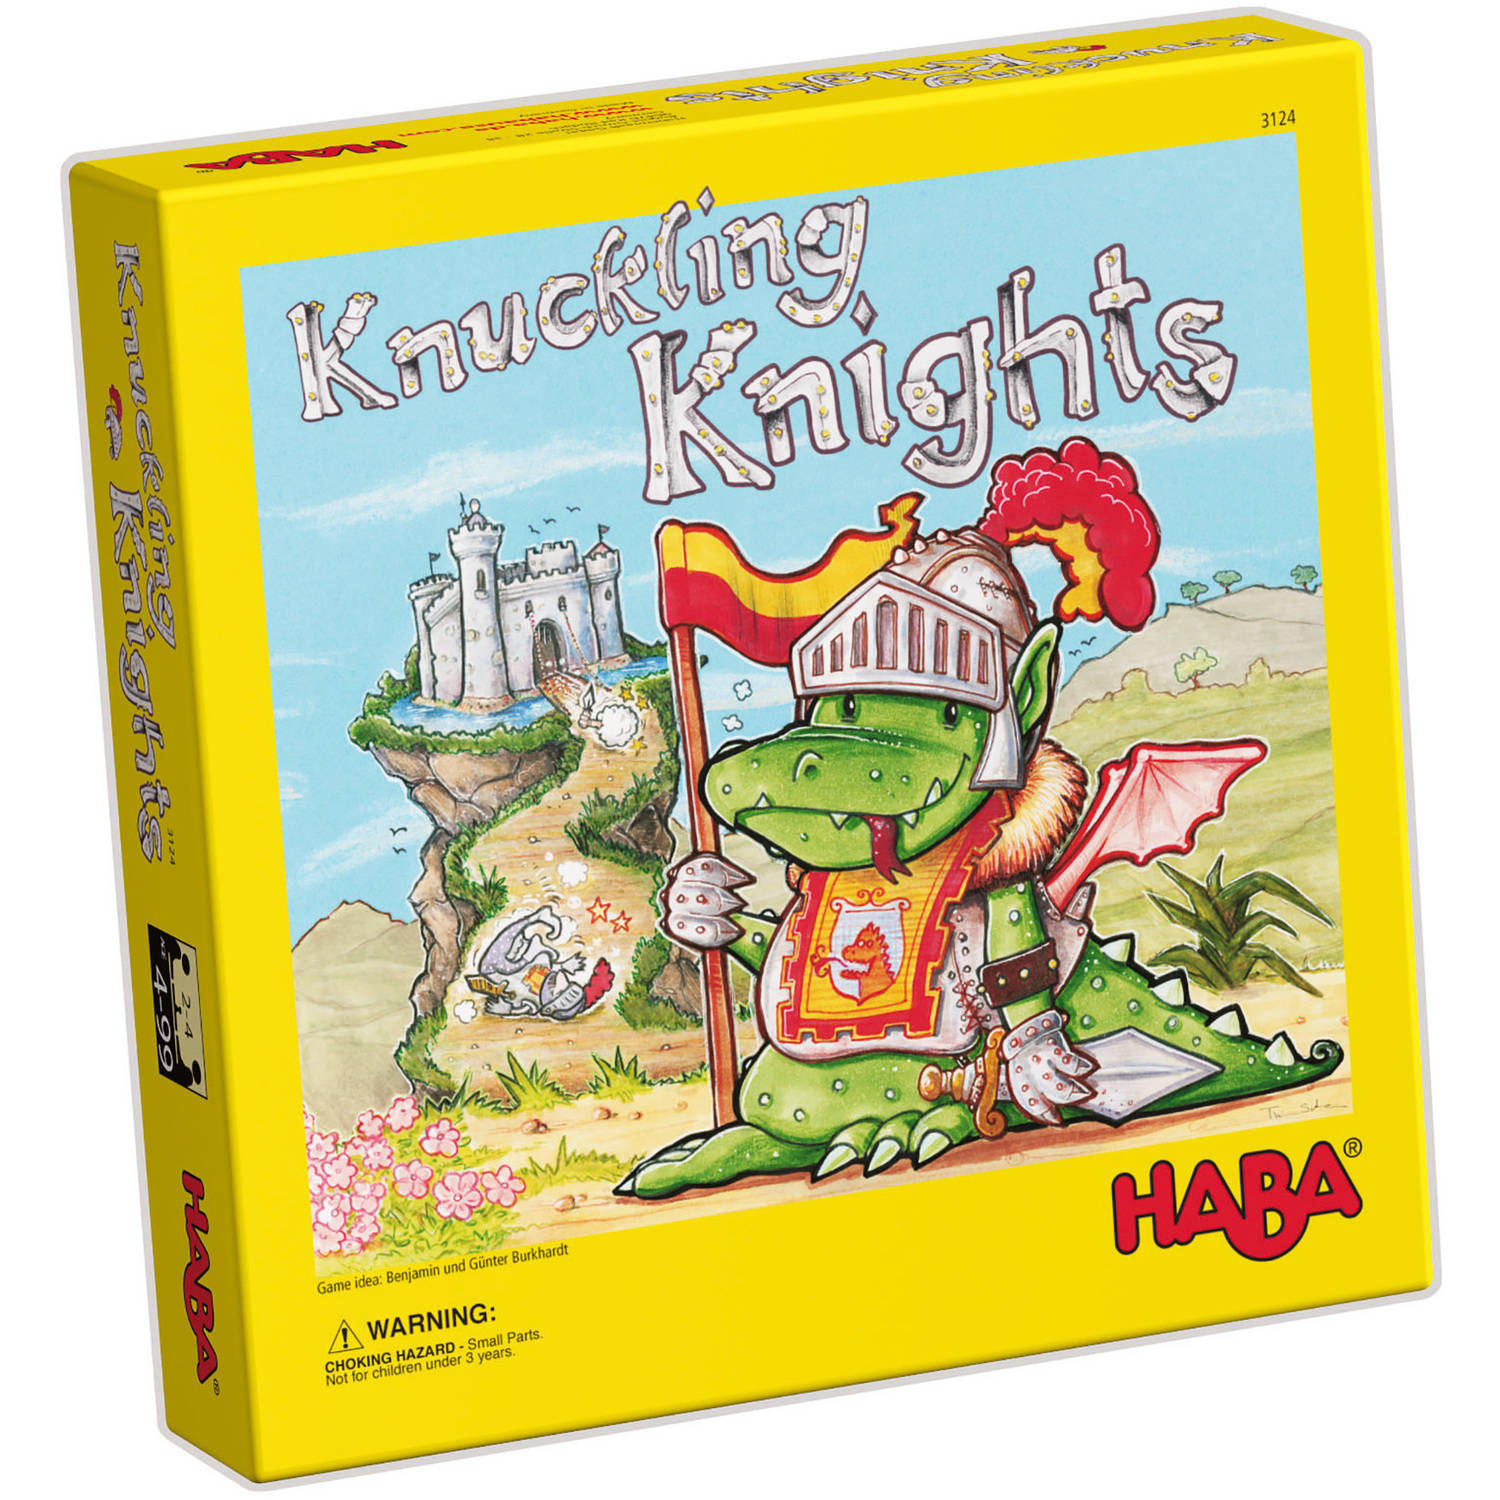 HABA Knuckling Knights Board Game